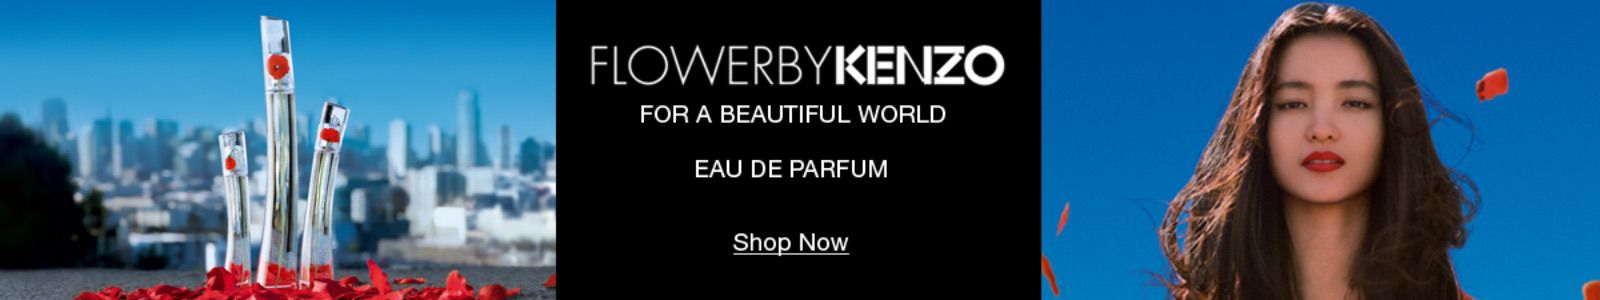 Flower By Kenzo, For a Beautiful World, Eau De Parfum